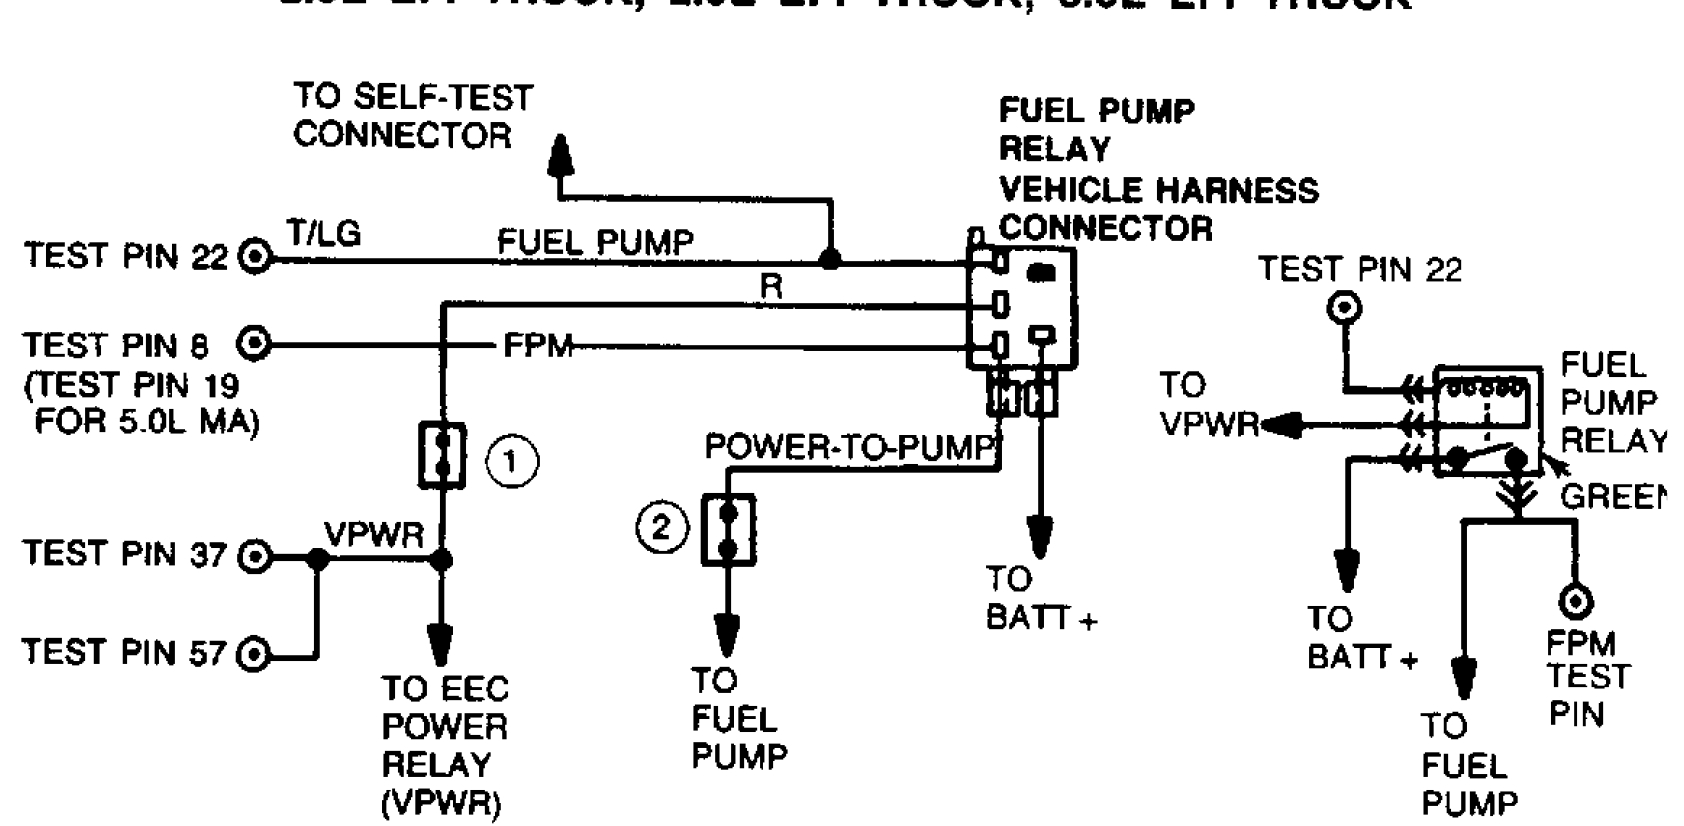 original eec iv wiring diagram eec iv bracket \u2022 free wiring diagrams life 1989 ford ranger wiring diagram at soozxer.org